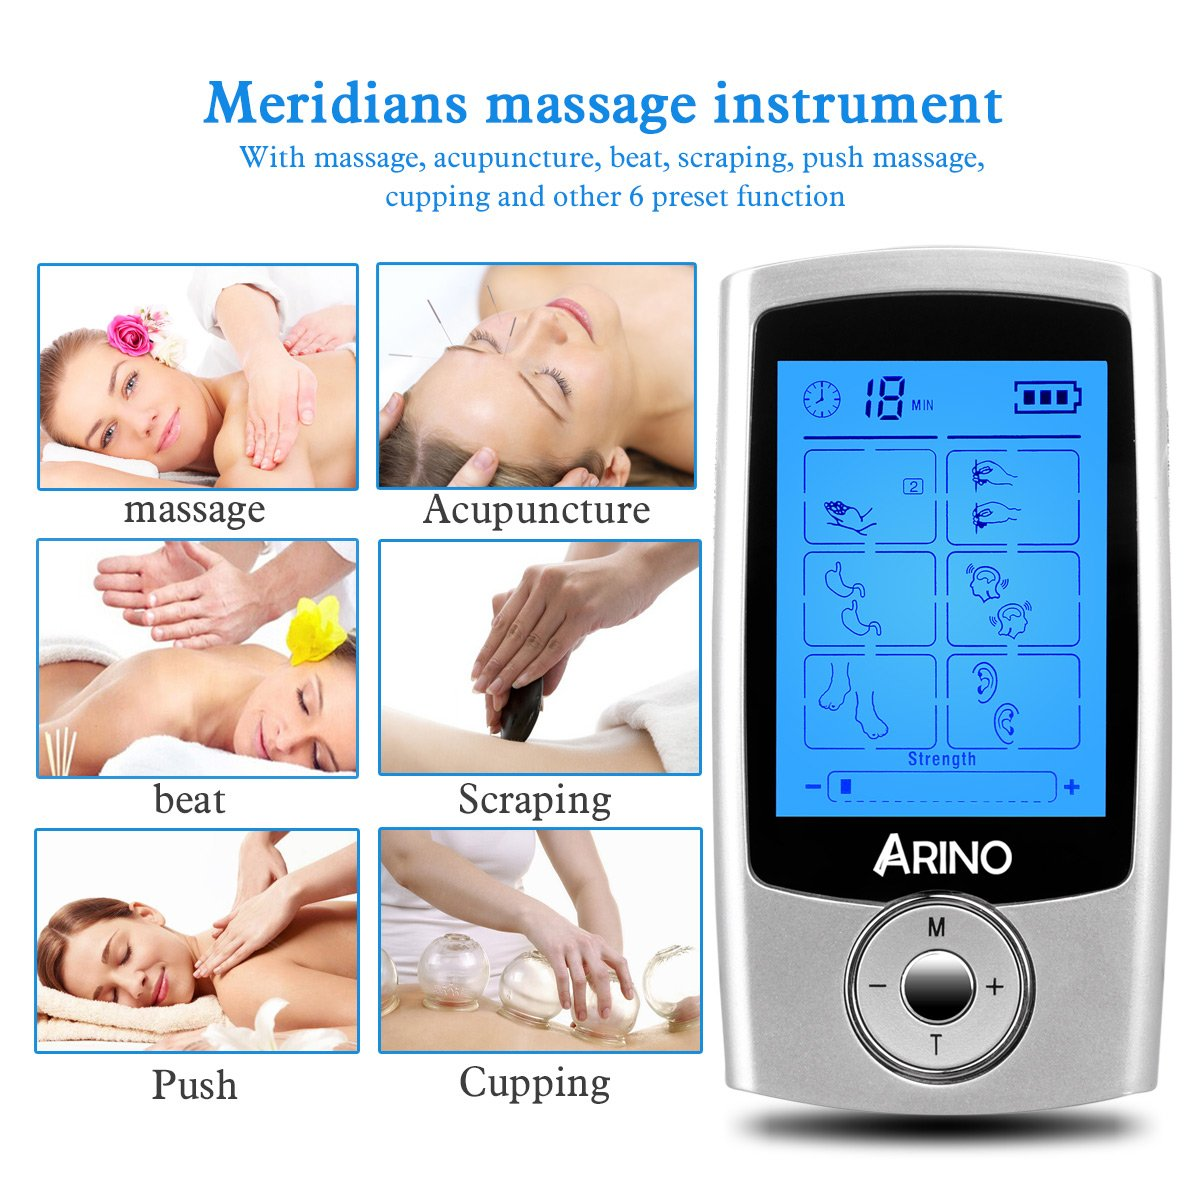 ARINO TENS Unit Muscle Stimulator Massage Unit Electronic Pulse Massager Electrodes Pain Relief FDA Cleared 16 Modes Rechargeable